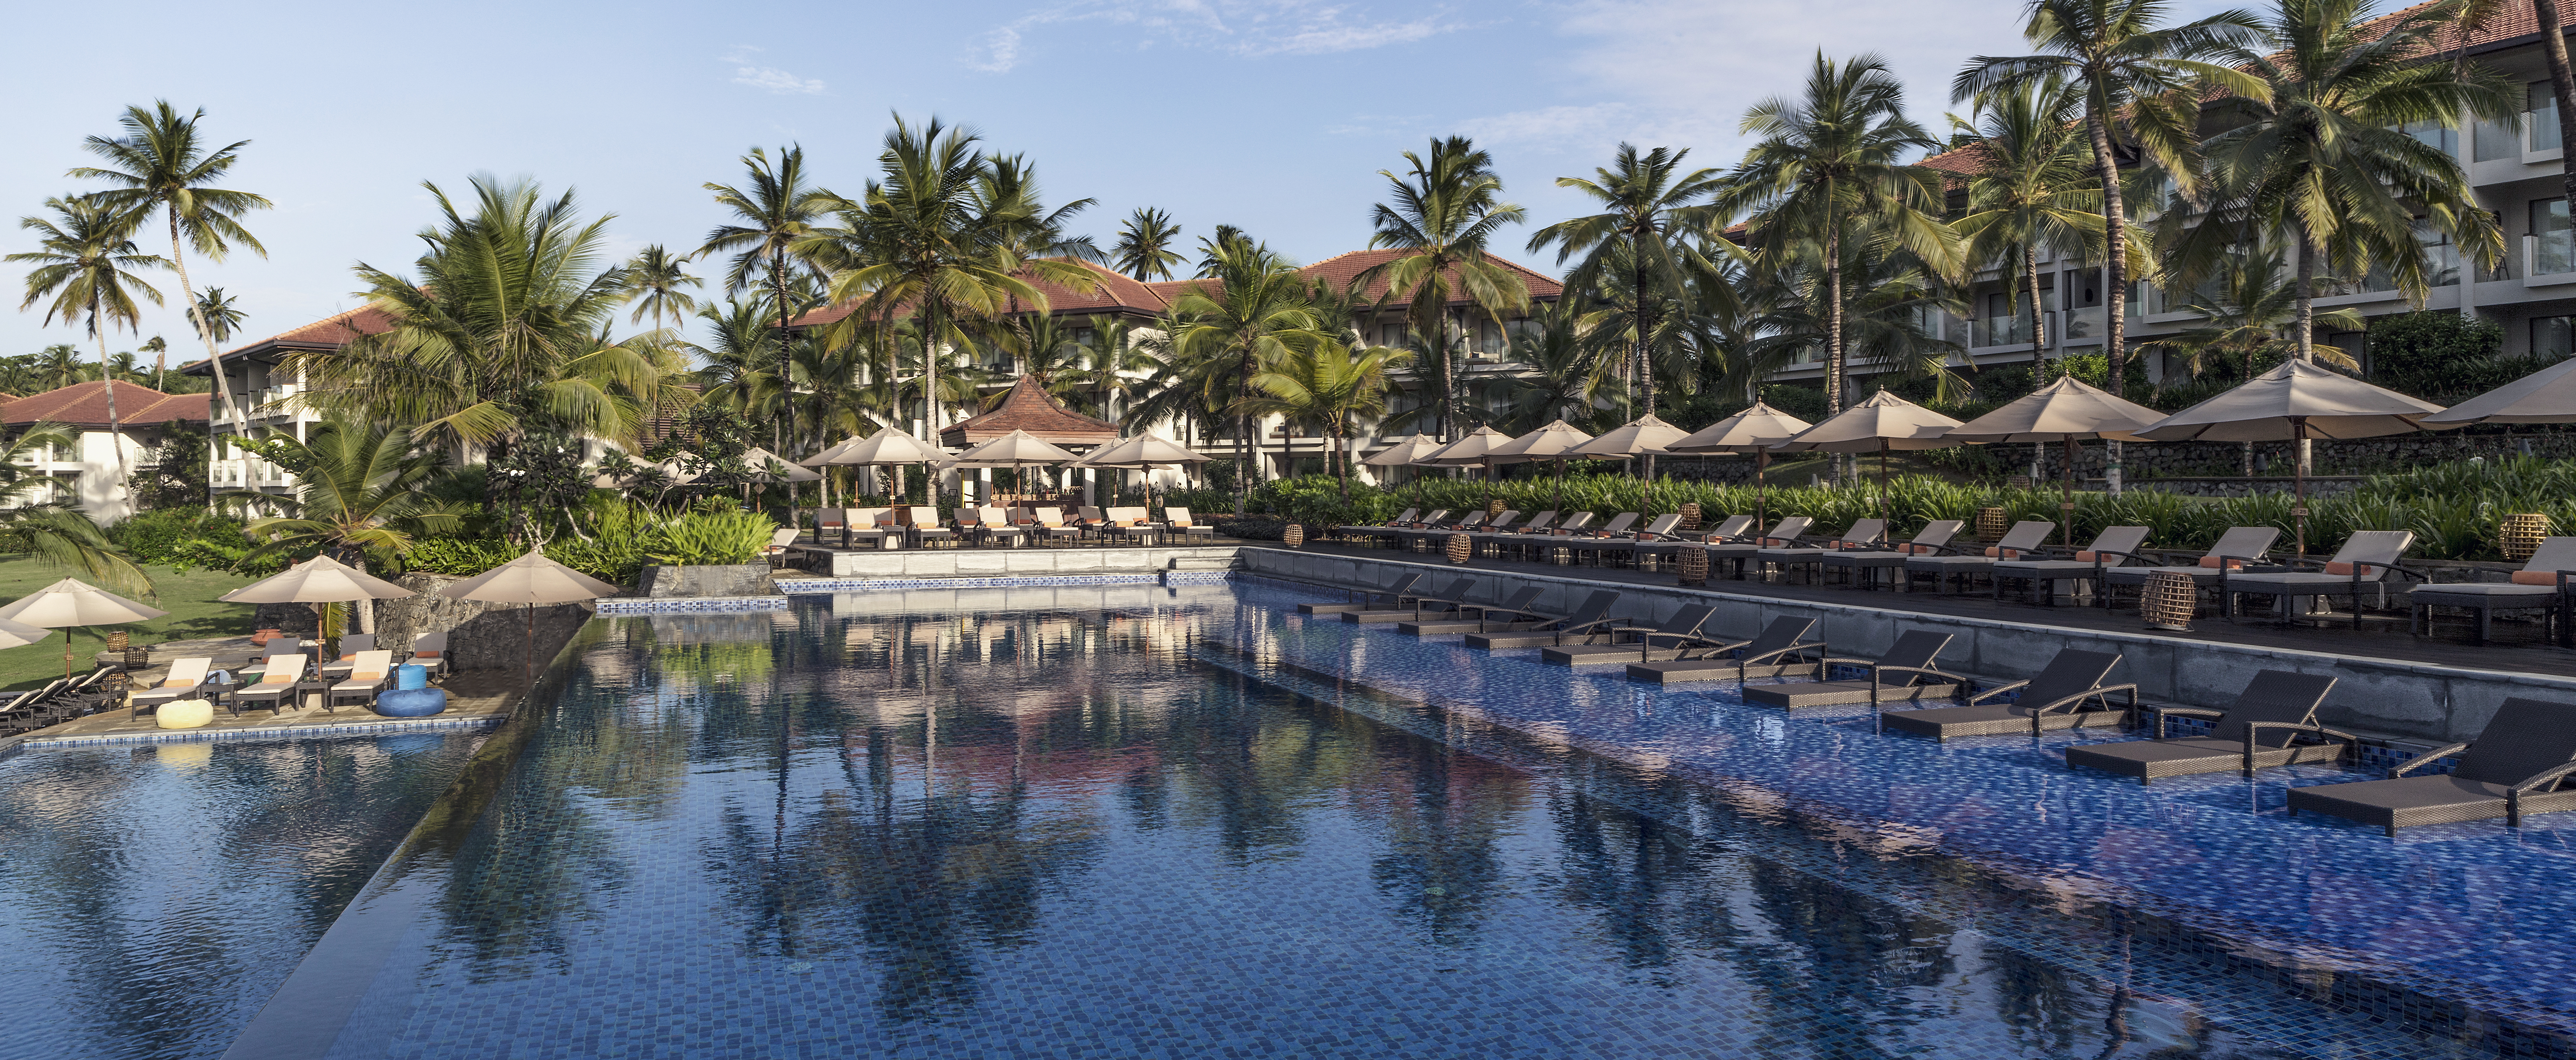 anantara-peace-haven-view